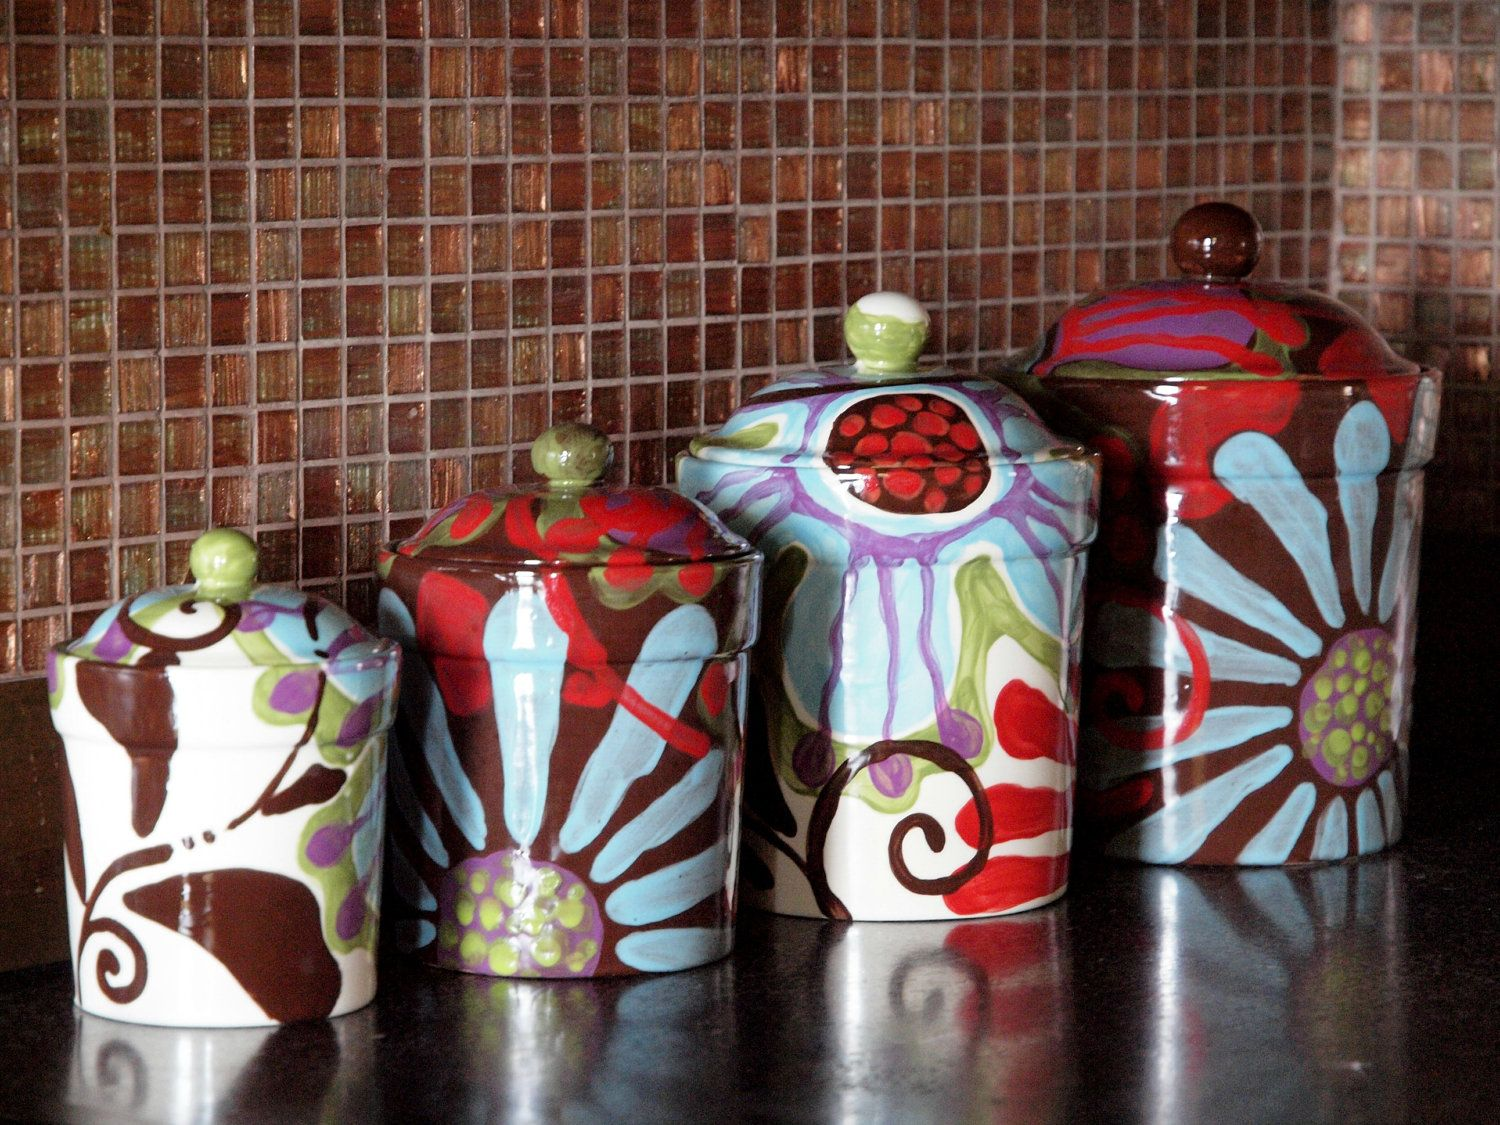 Canister Set Kitchen Canisters Ceramic Pottery Colorful Urban Decor Boho Hippie Uf